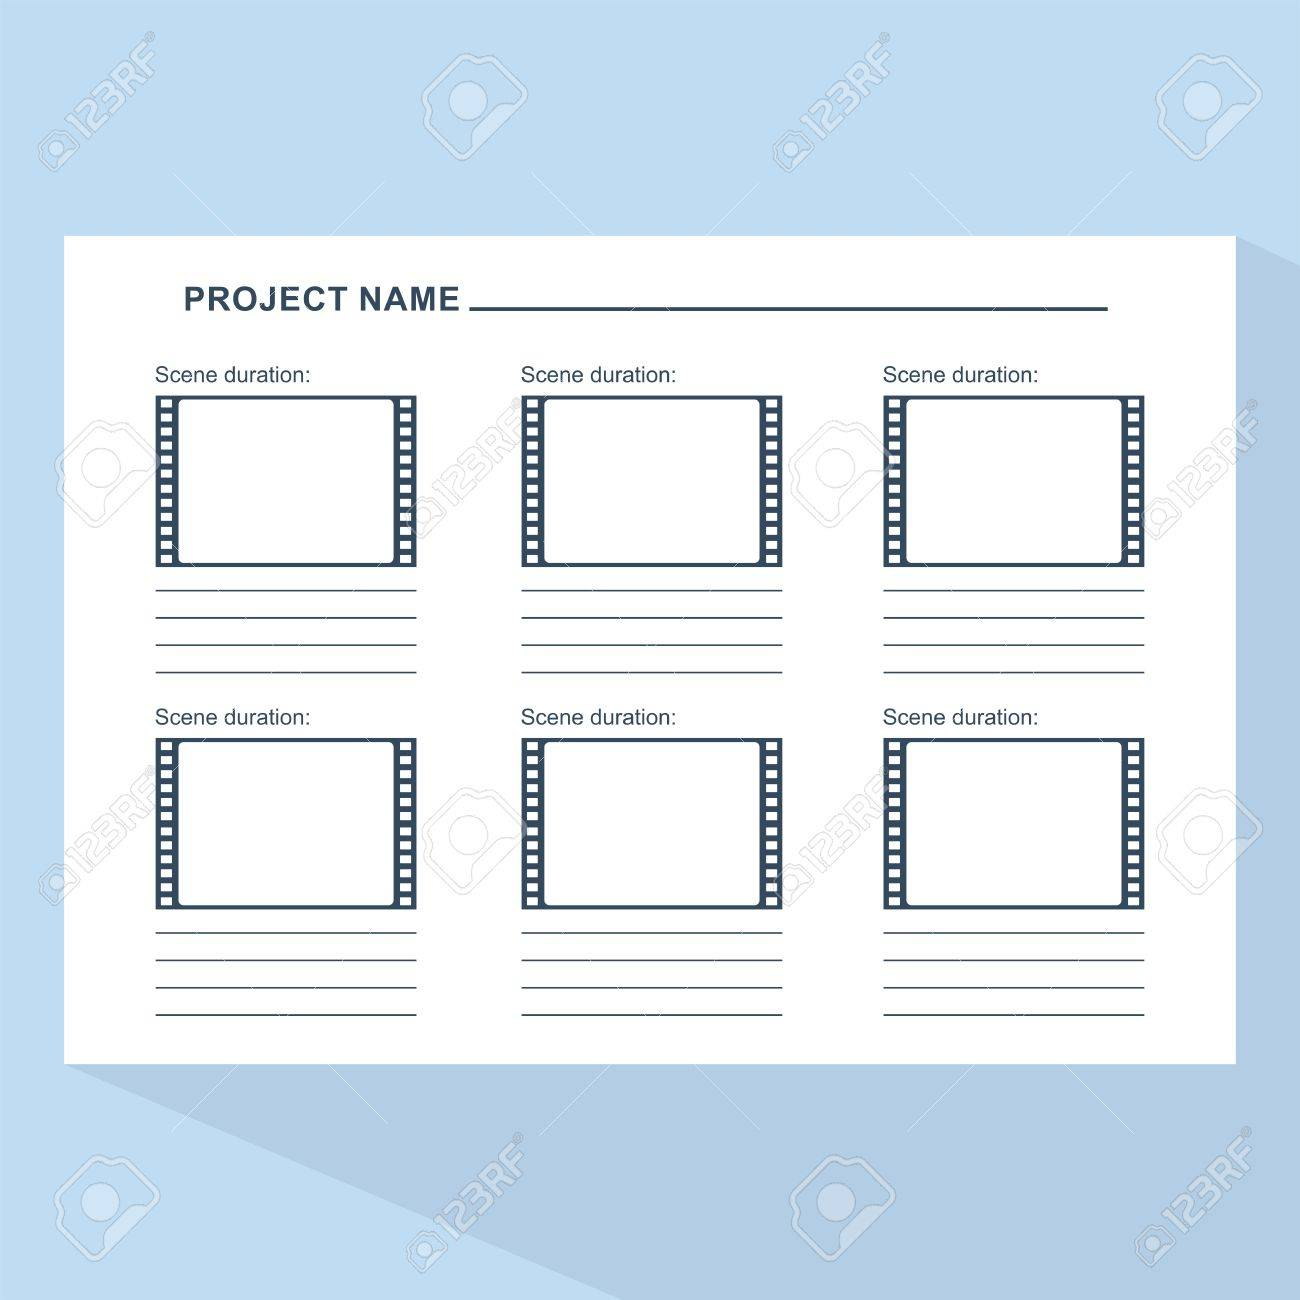 storyboard template in form of a film scenario for media production